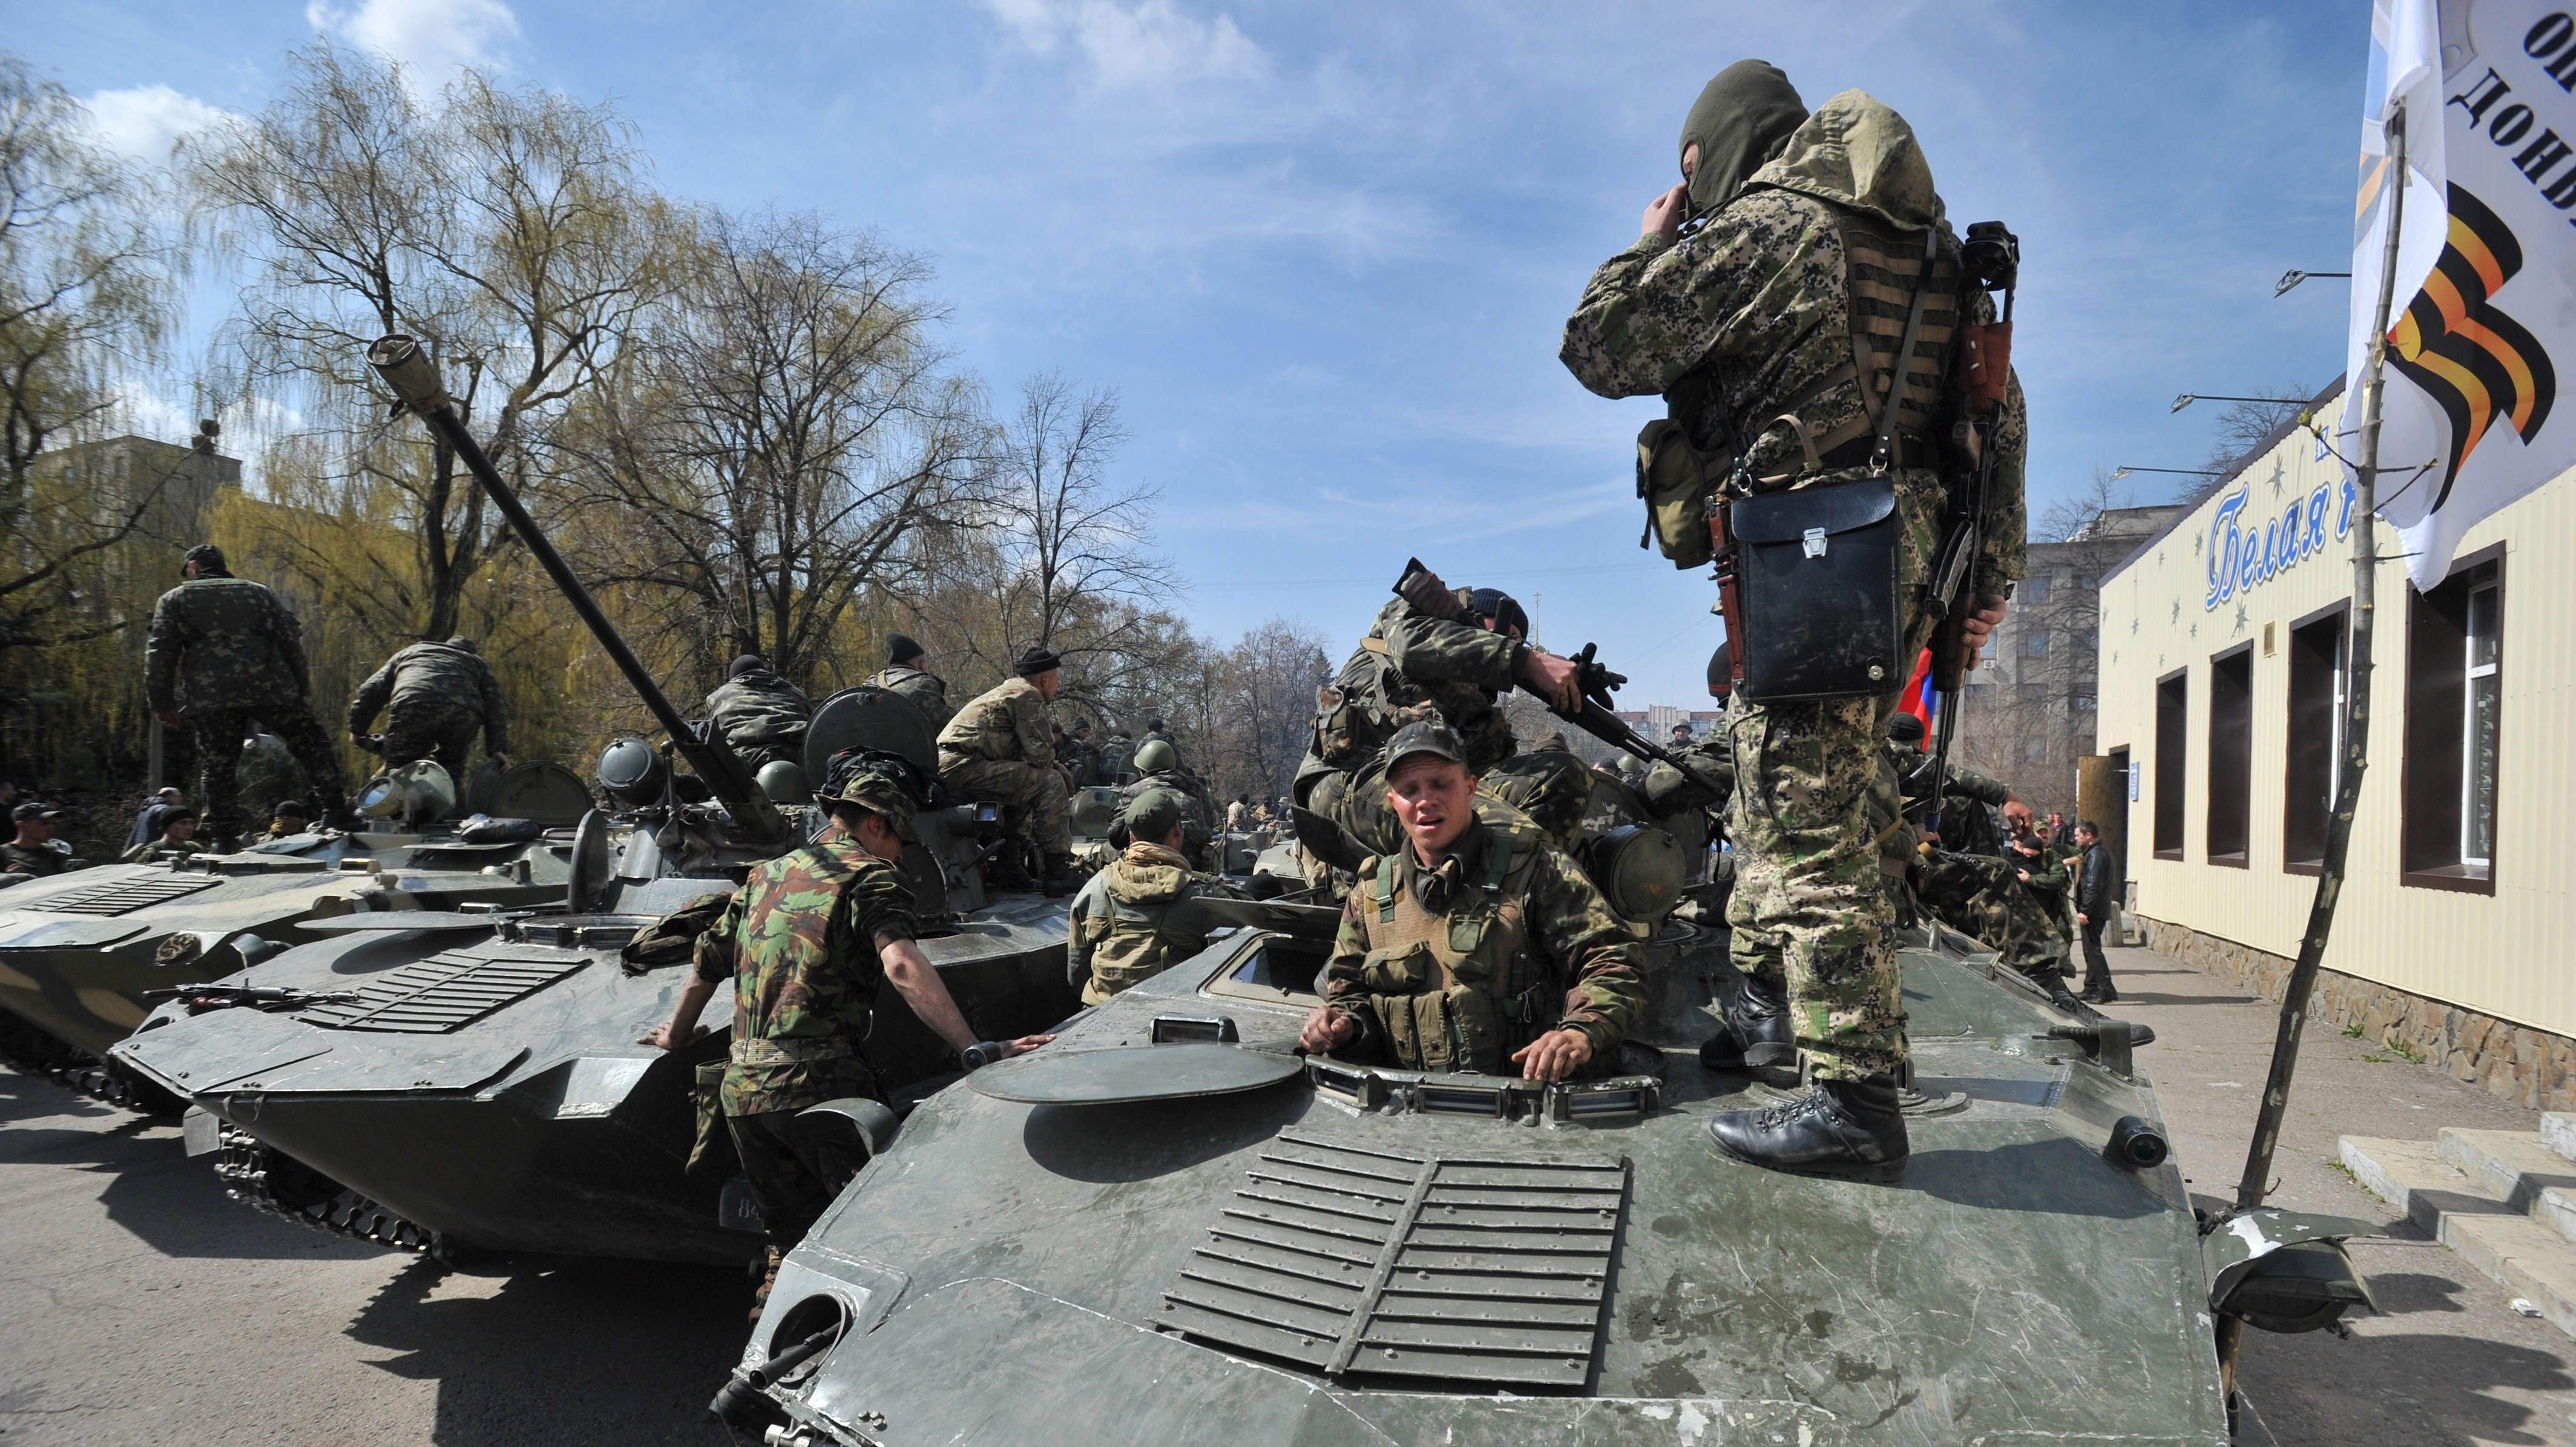 Ukraine Crisis: Russia Endorses Call For Protesters To Disarm